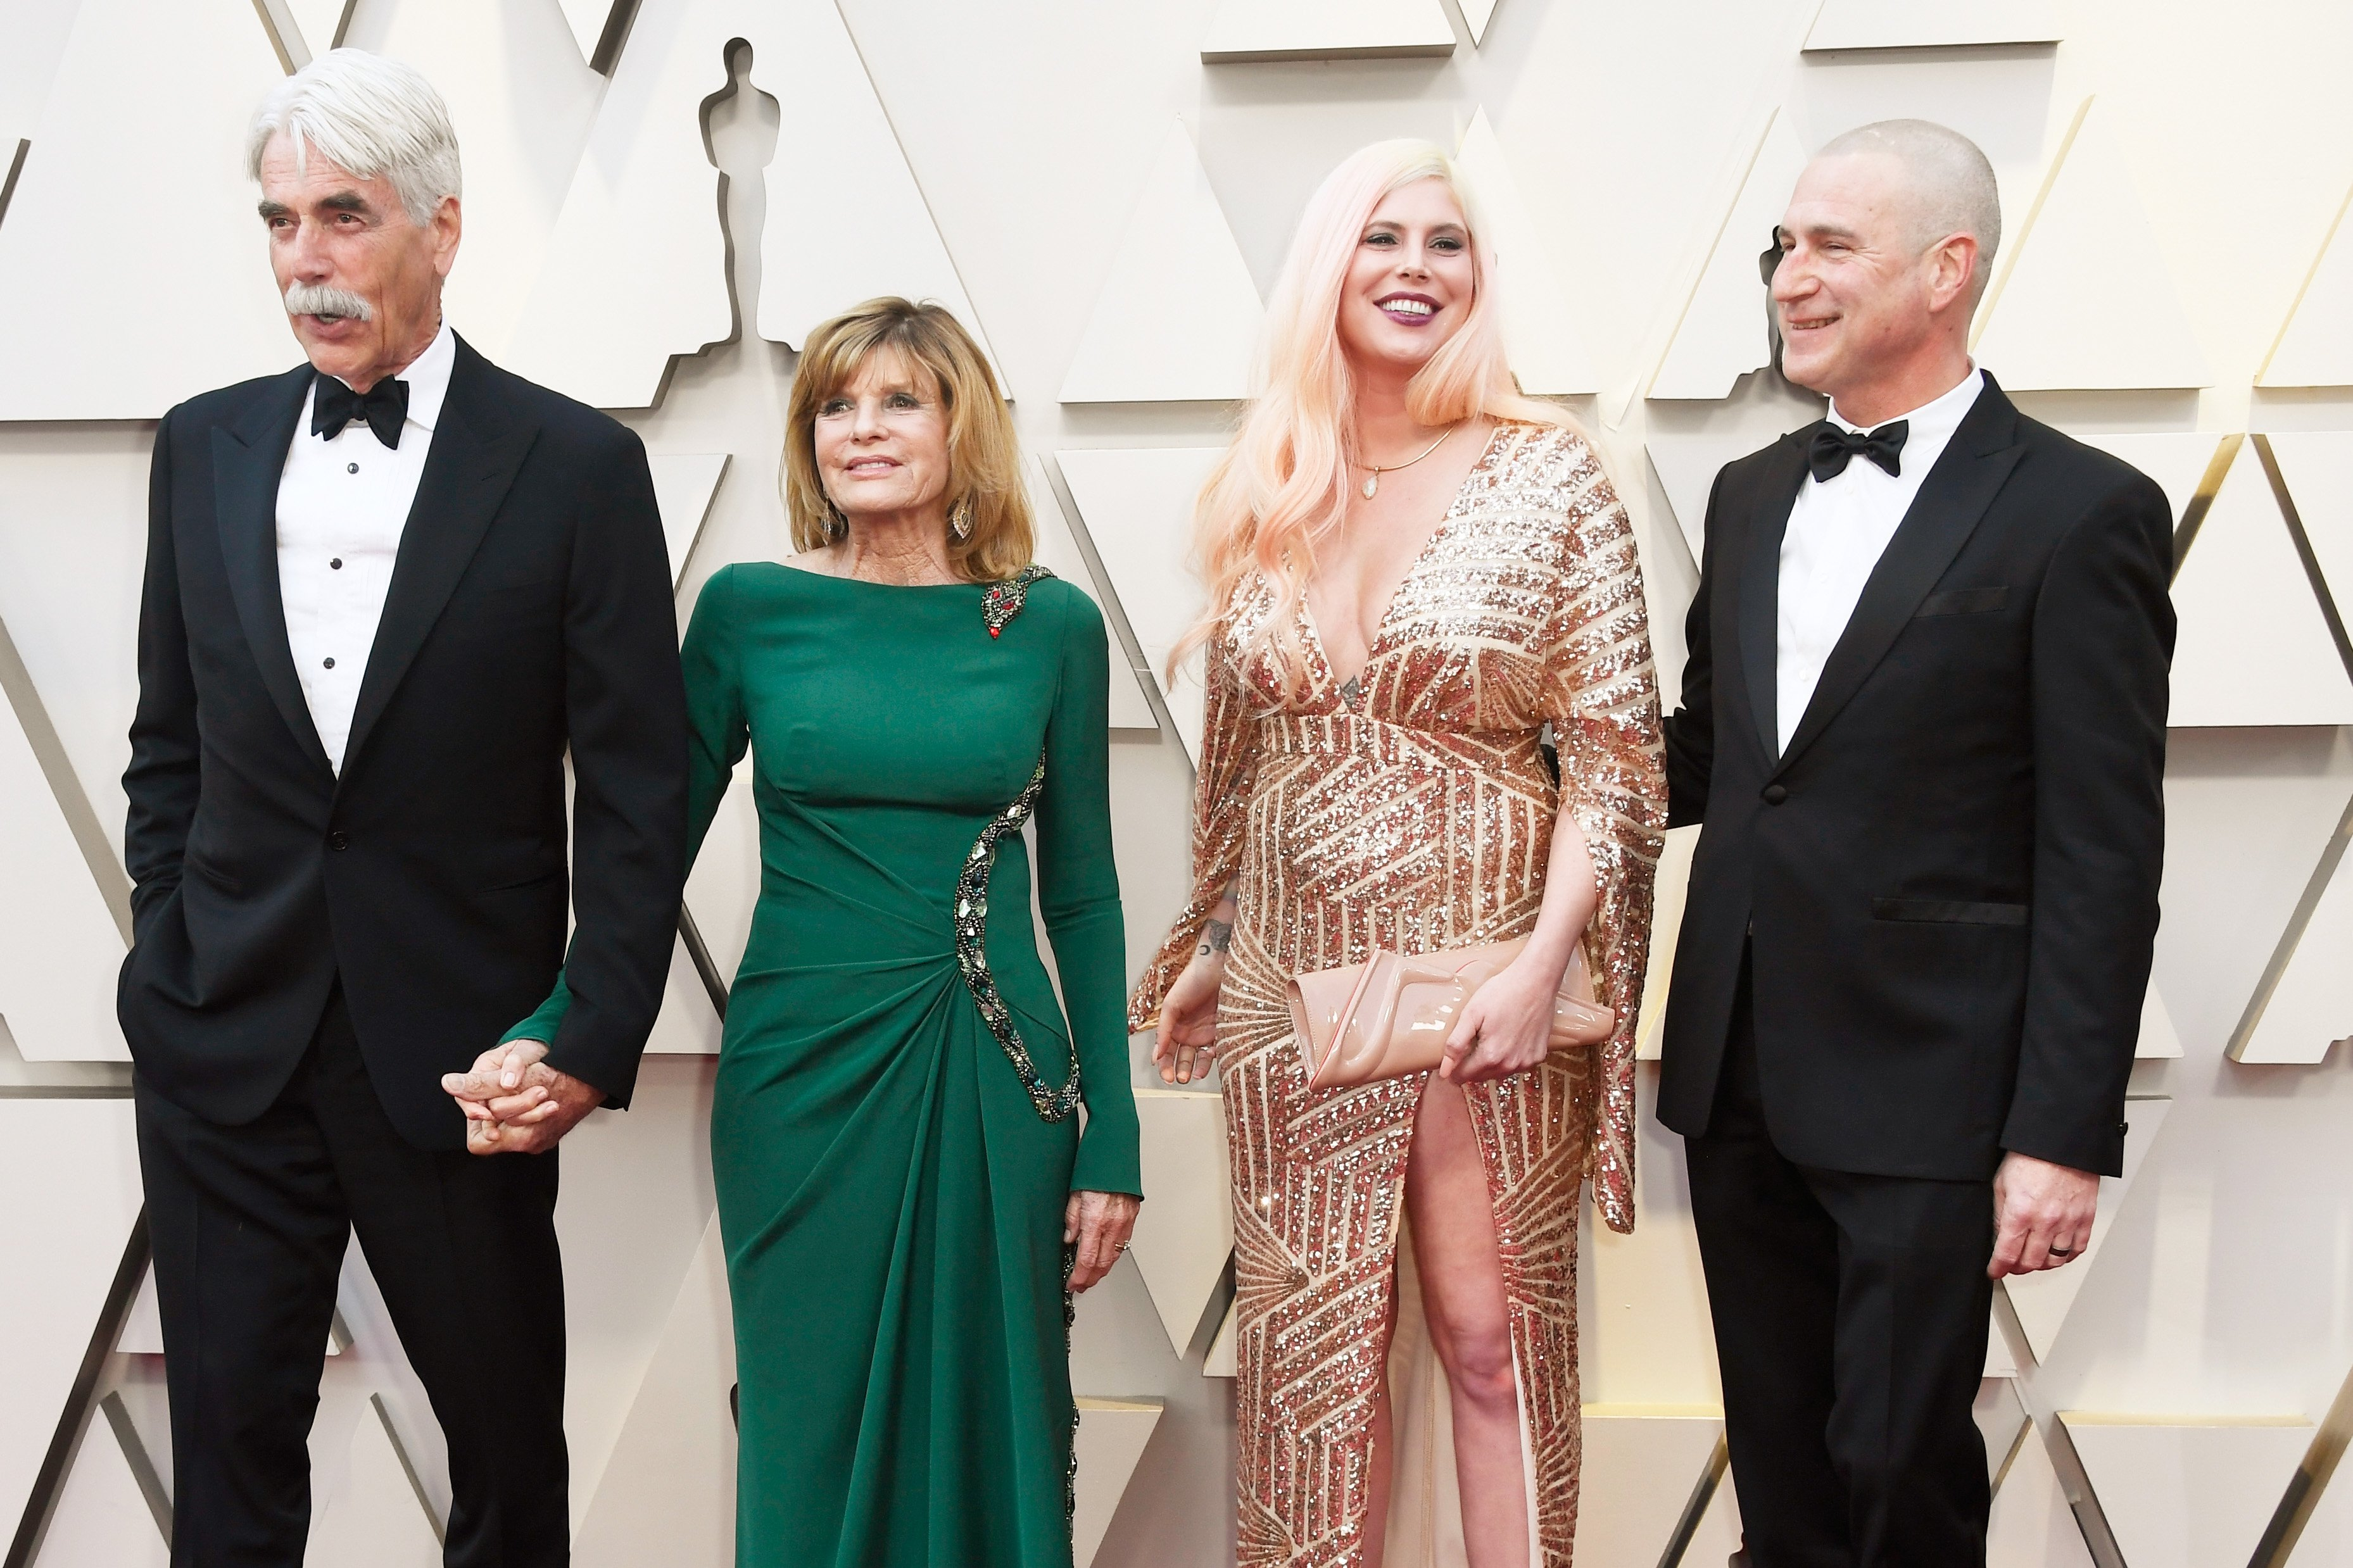 Sam Elliott with wife Katharine Ross and daughter Cleo Rose Elliott posing on red carpet at 91st Annual Academy Awards